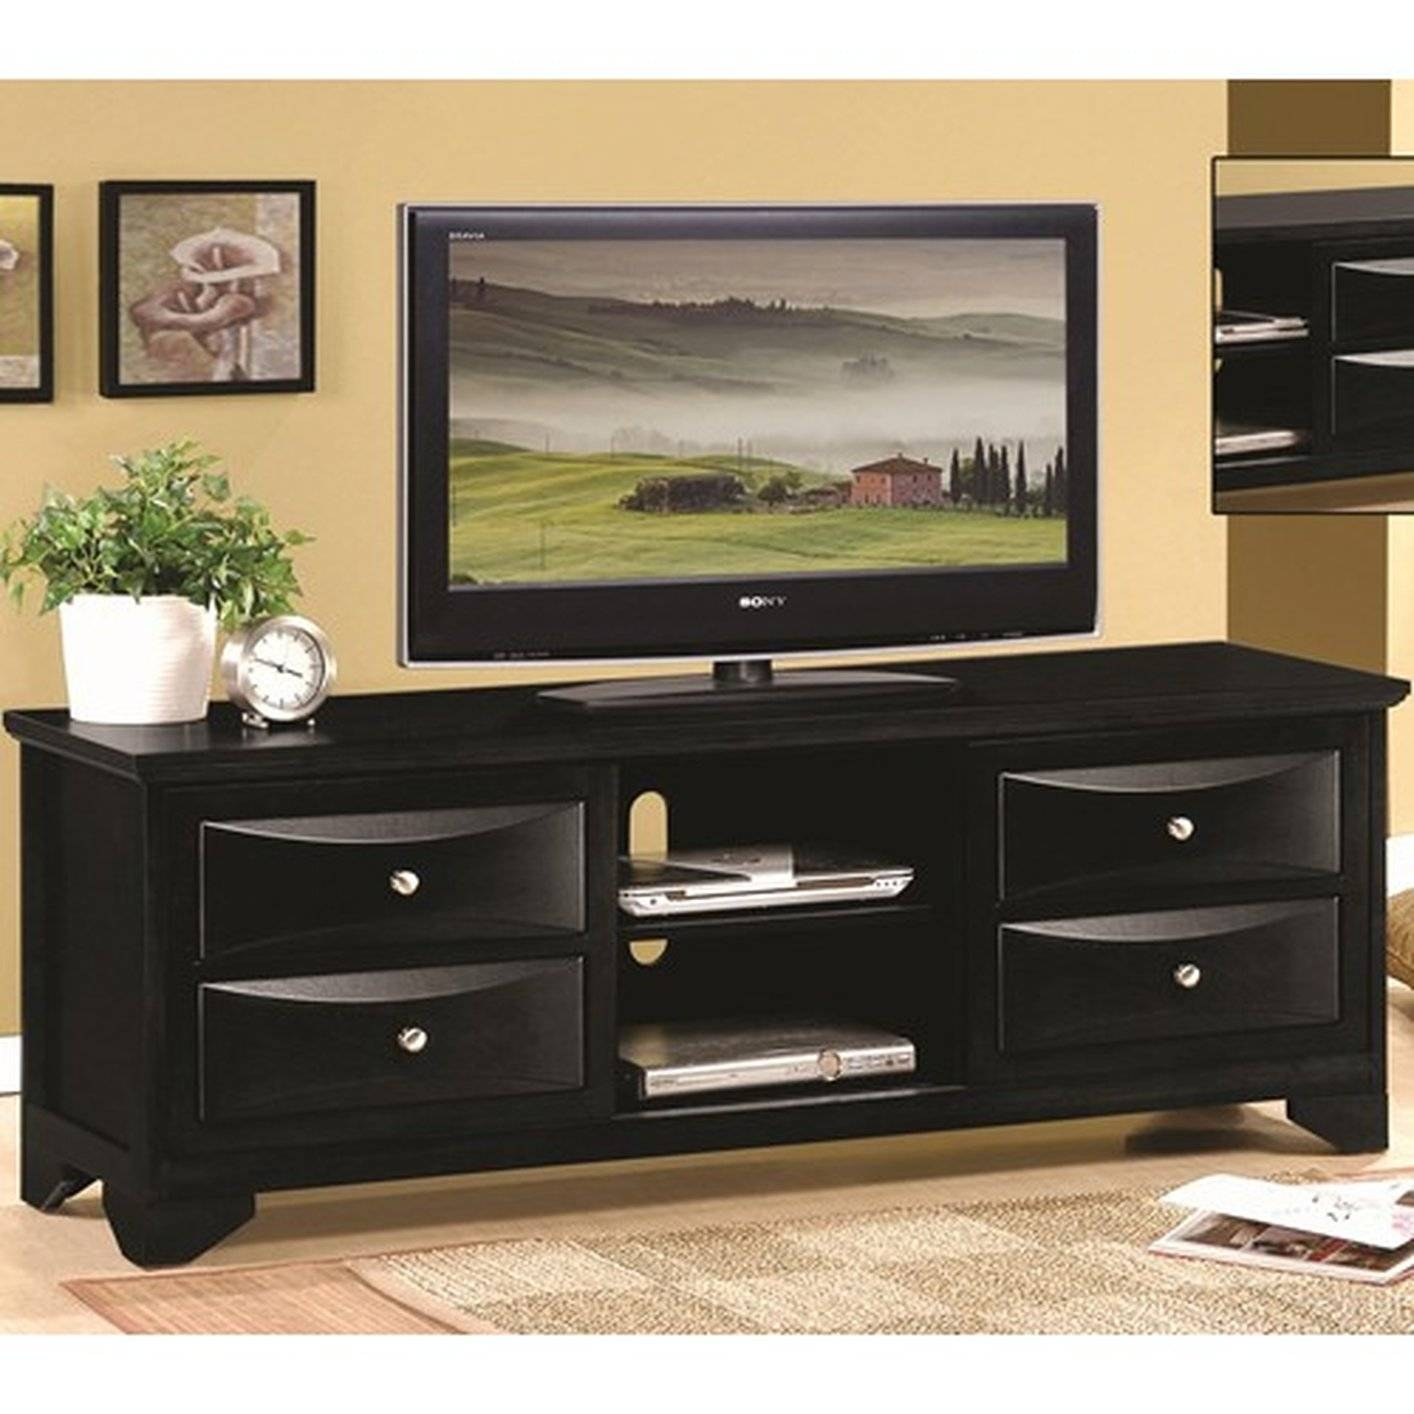 Black Wood Tv Stand – Steal A Sofa Furniture Outlet Los Angeles Ca Intended For Rectangular Tv Stands (View 6 of 15)